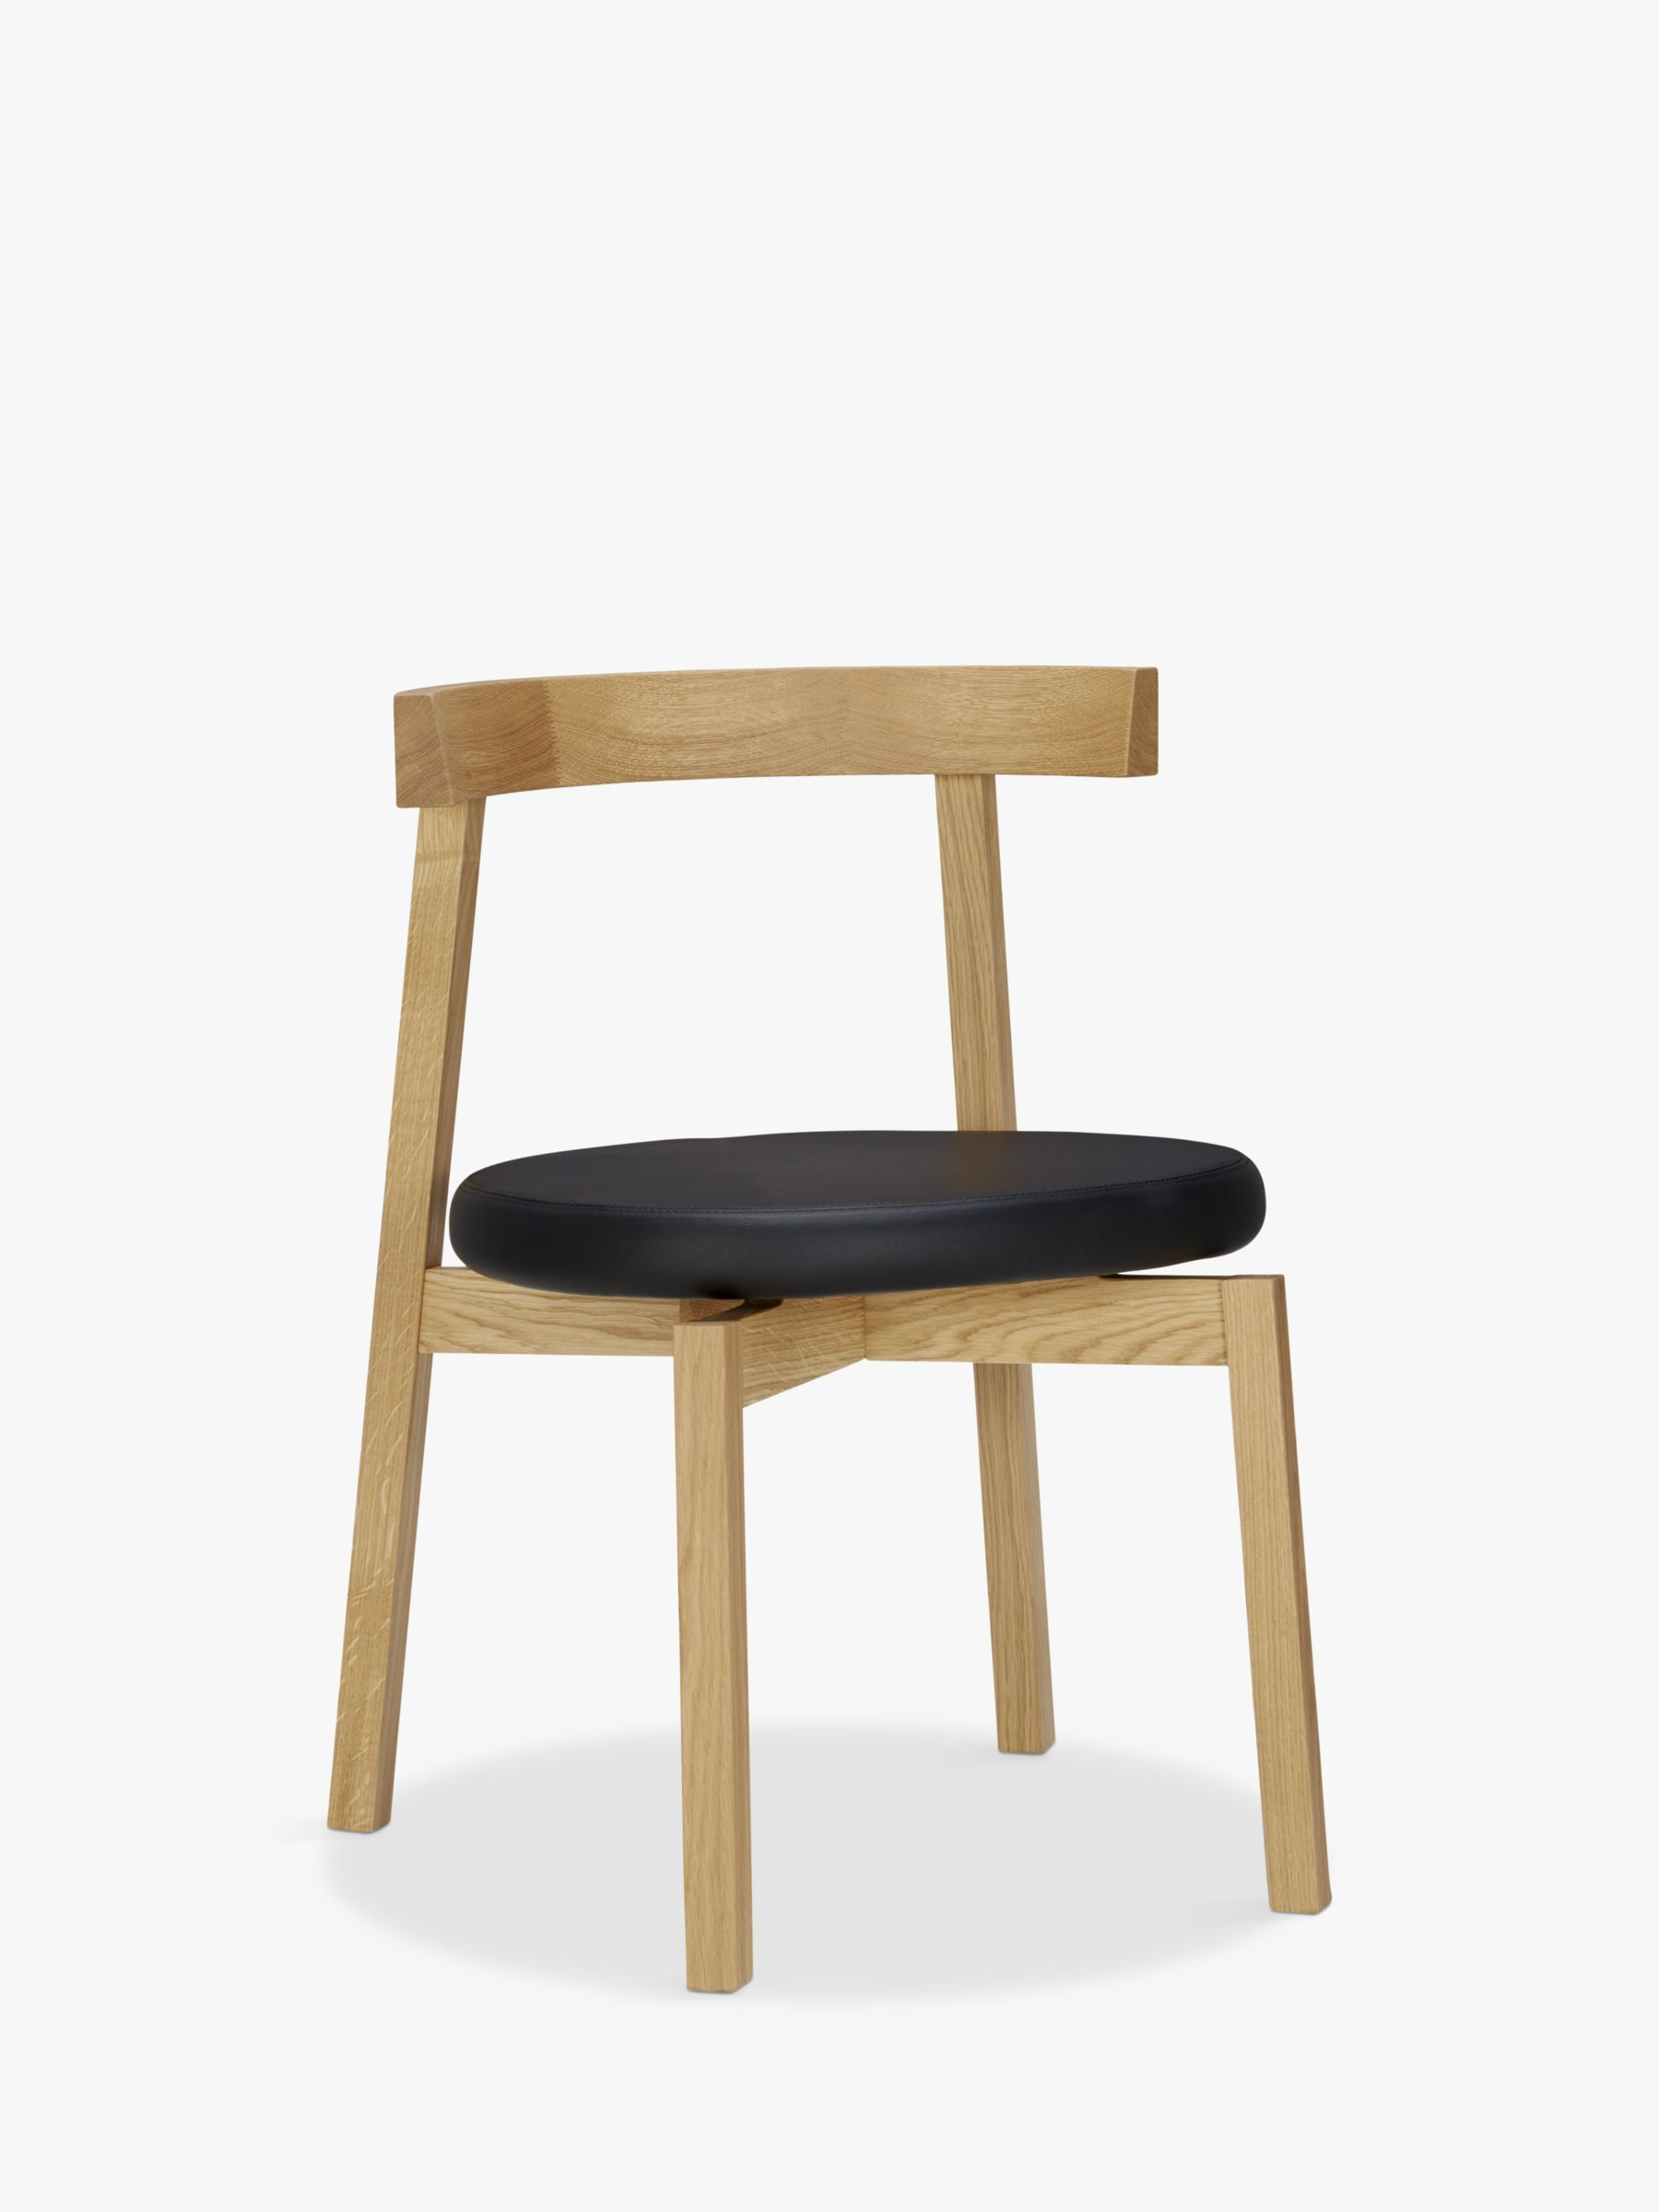 Case Nazanin Kamali for Case Oki-Nami Dining Chair, Oak